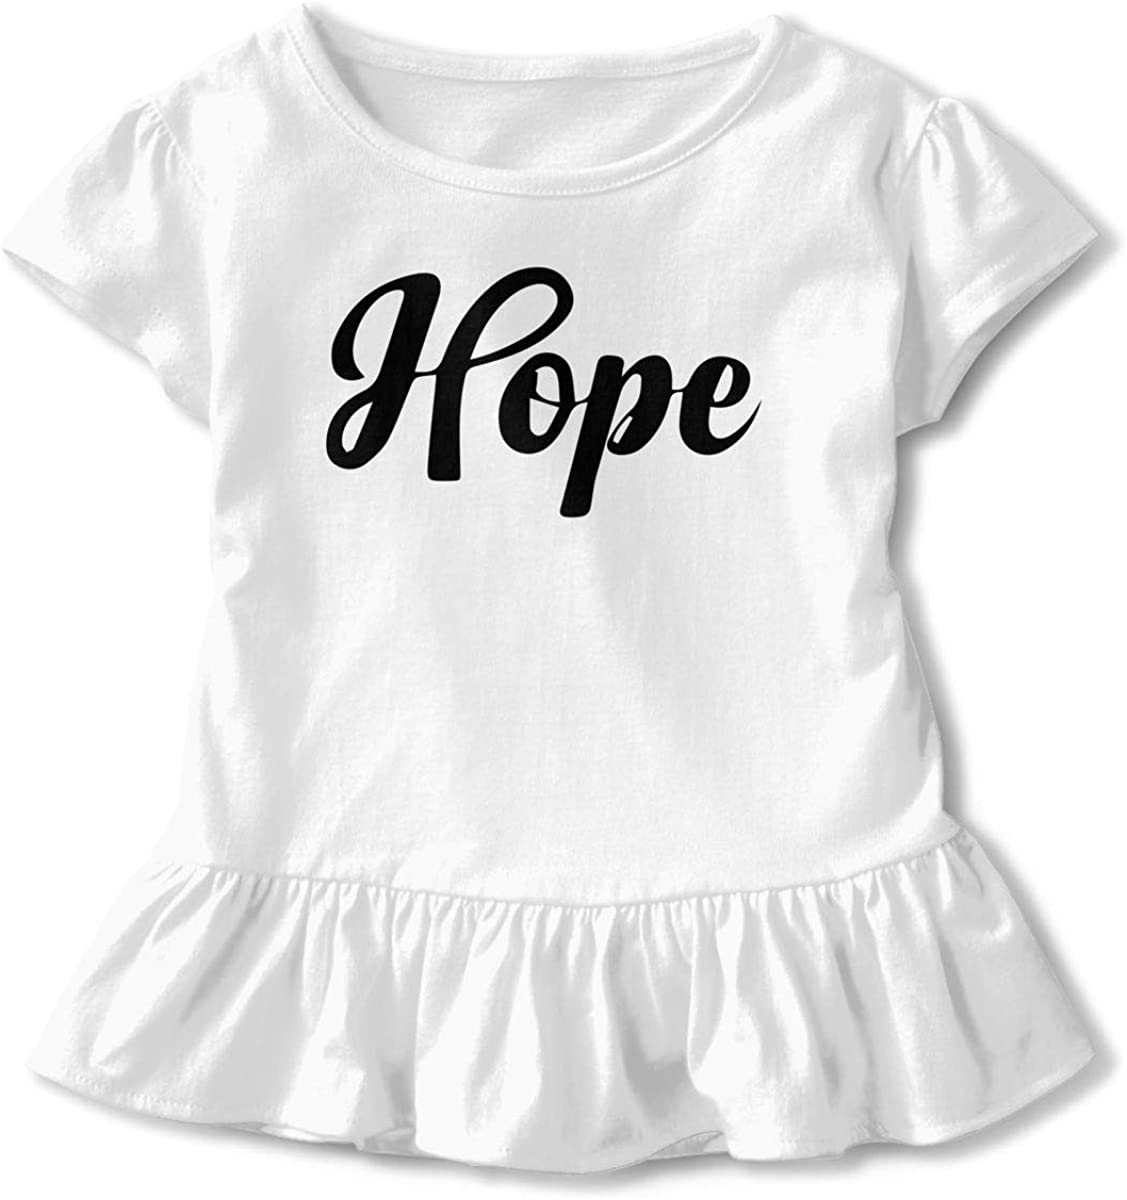 SC/_VD08 Breast Cancer Hope Baby Girls Short-Sleeved Tshirts Clothing